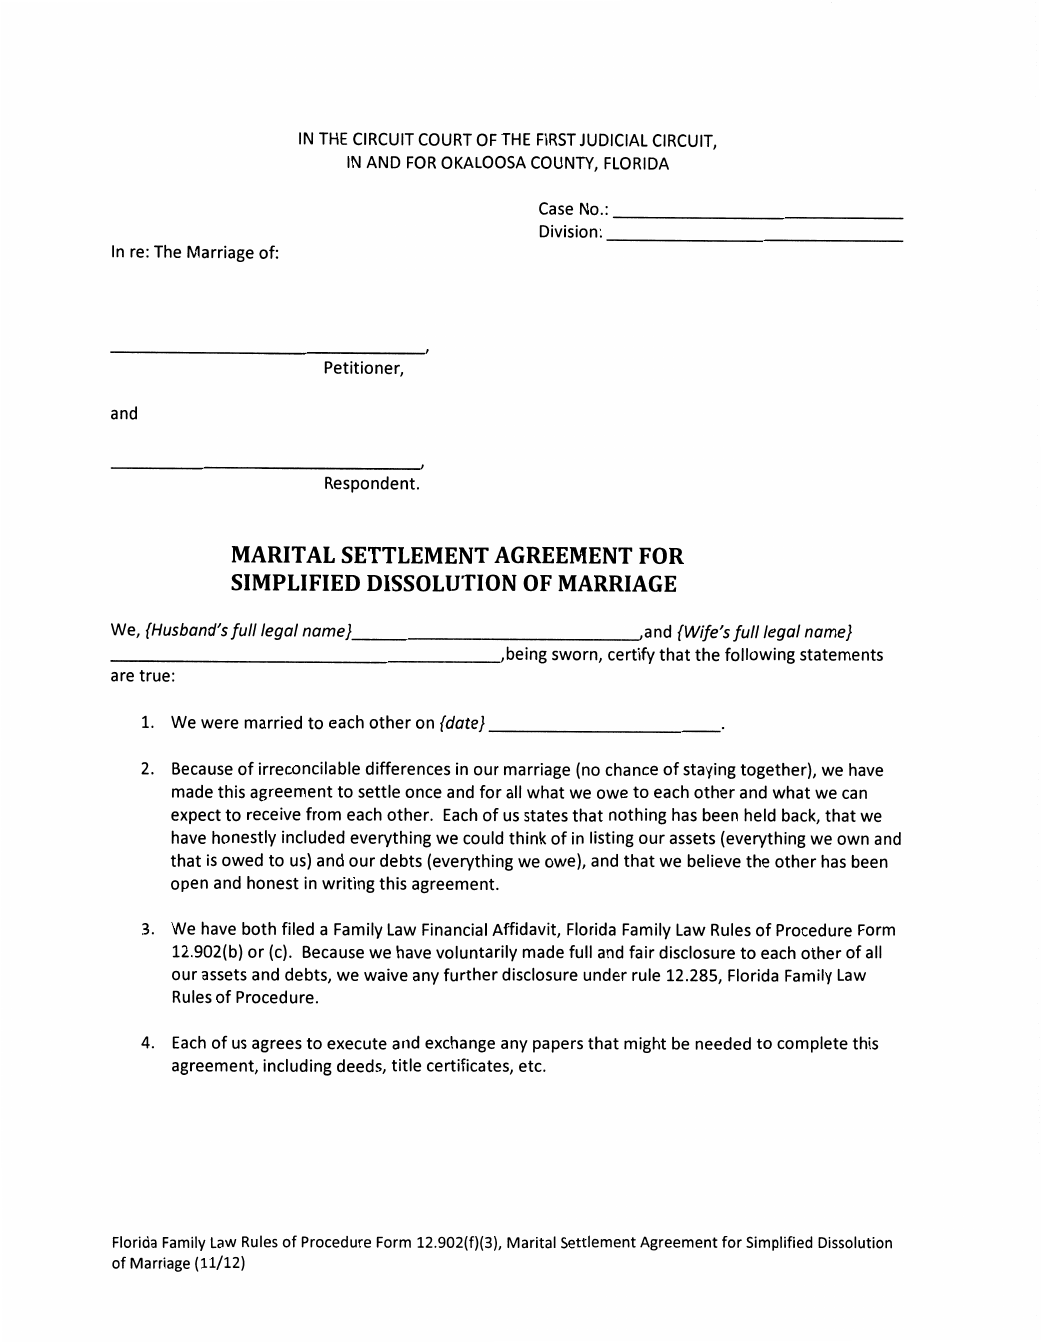 marital settlement agreement for simplified dissolution of